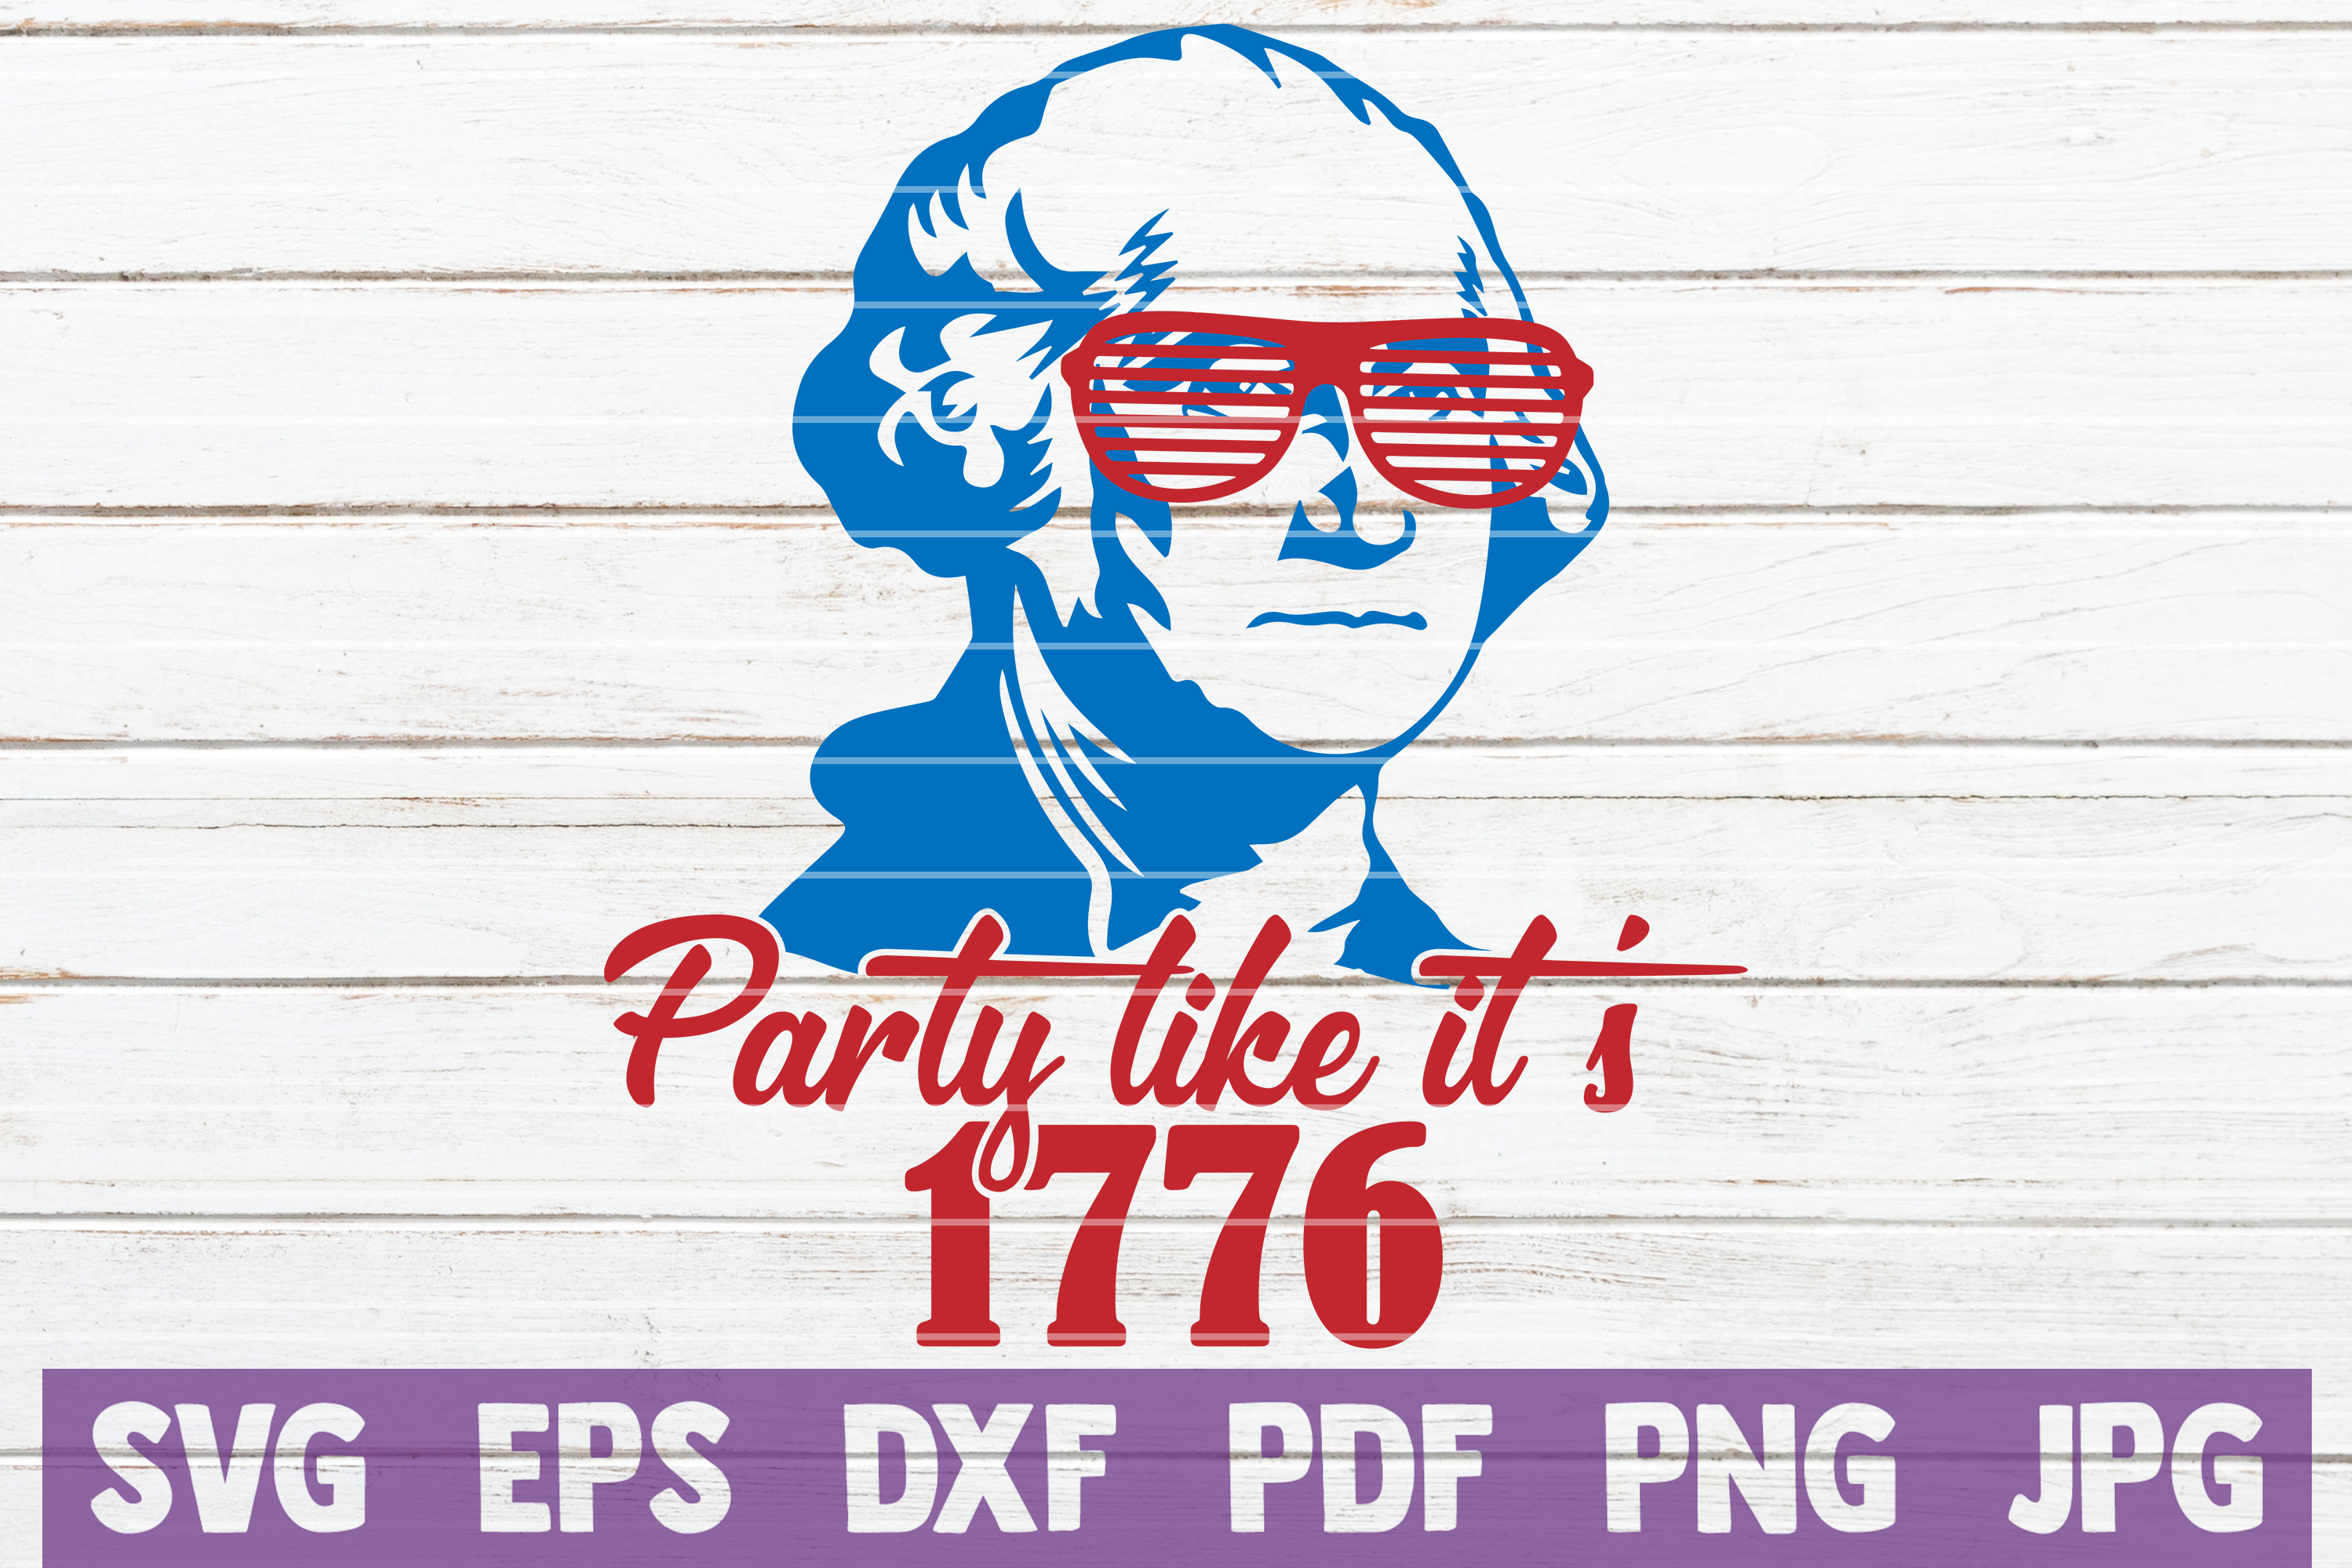 Download Free Party Like It S 1776 Svg Cut File Graphic By Mintymarshmallows for Cricut Explore, Silhouette and other cutting machines.